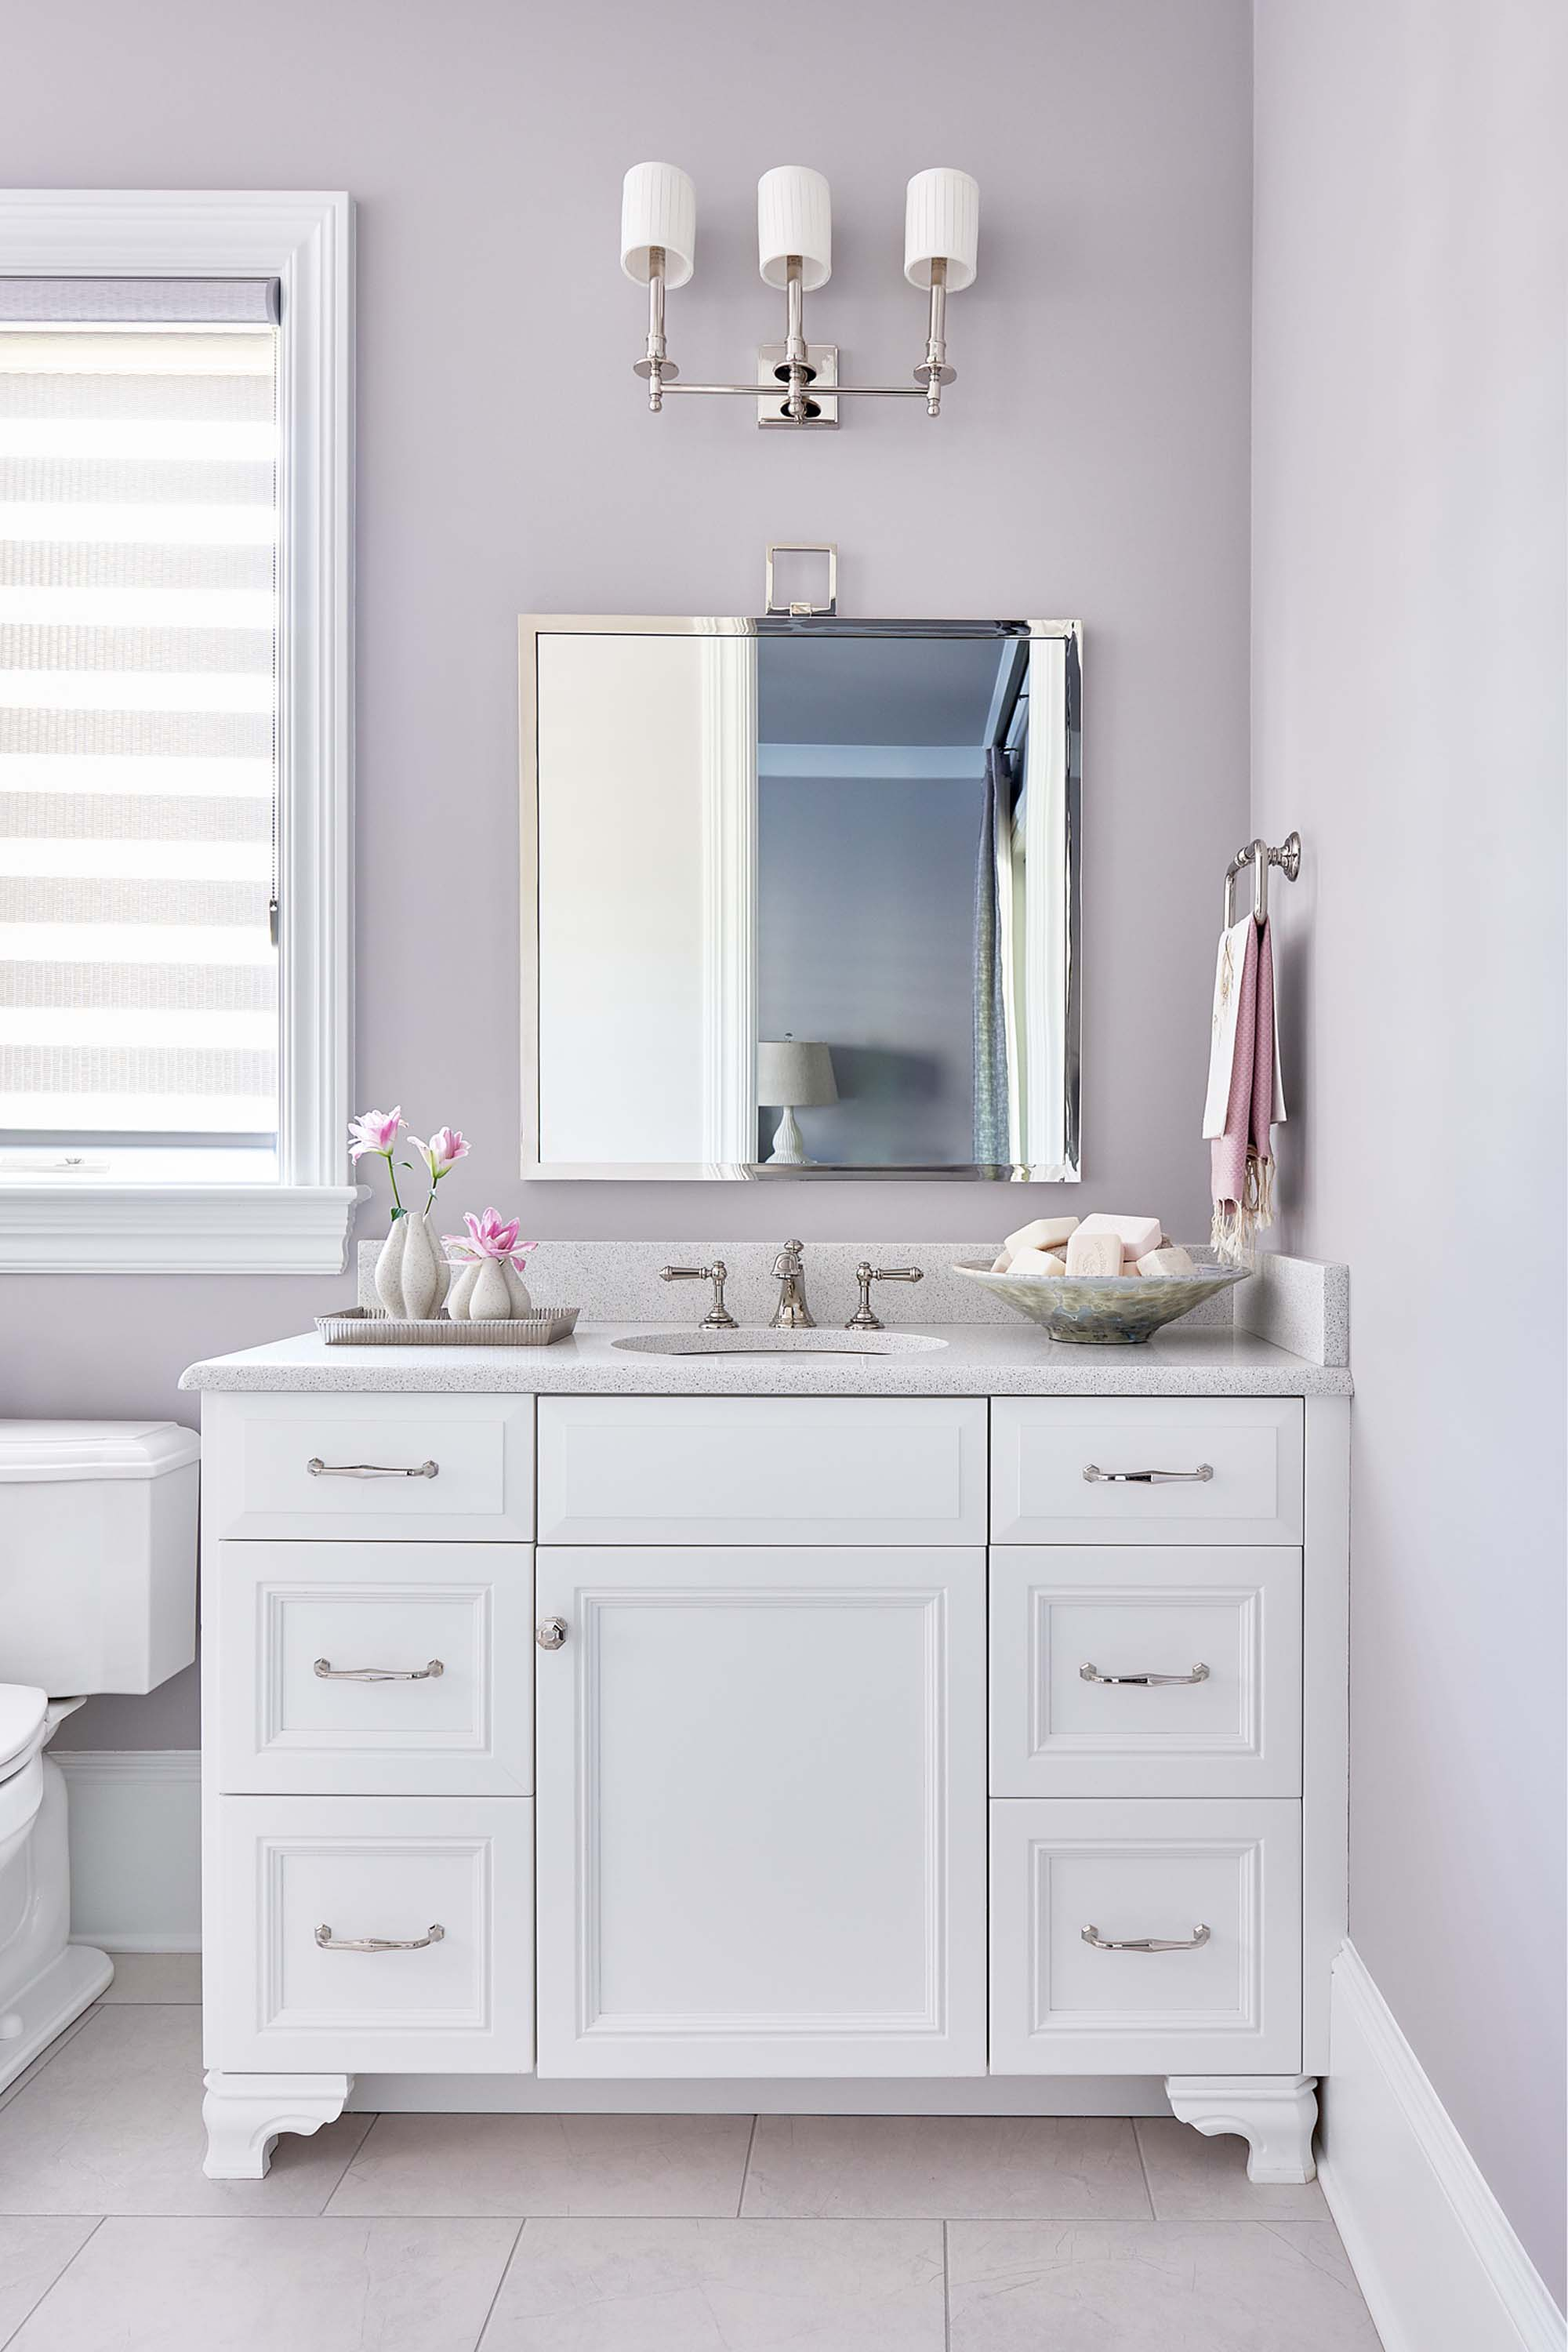 Guest bathroom with white vanity, lavender accent color